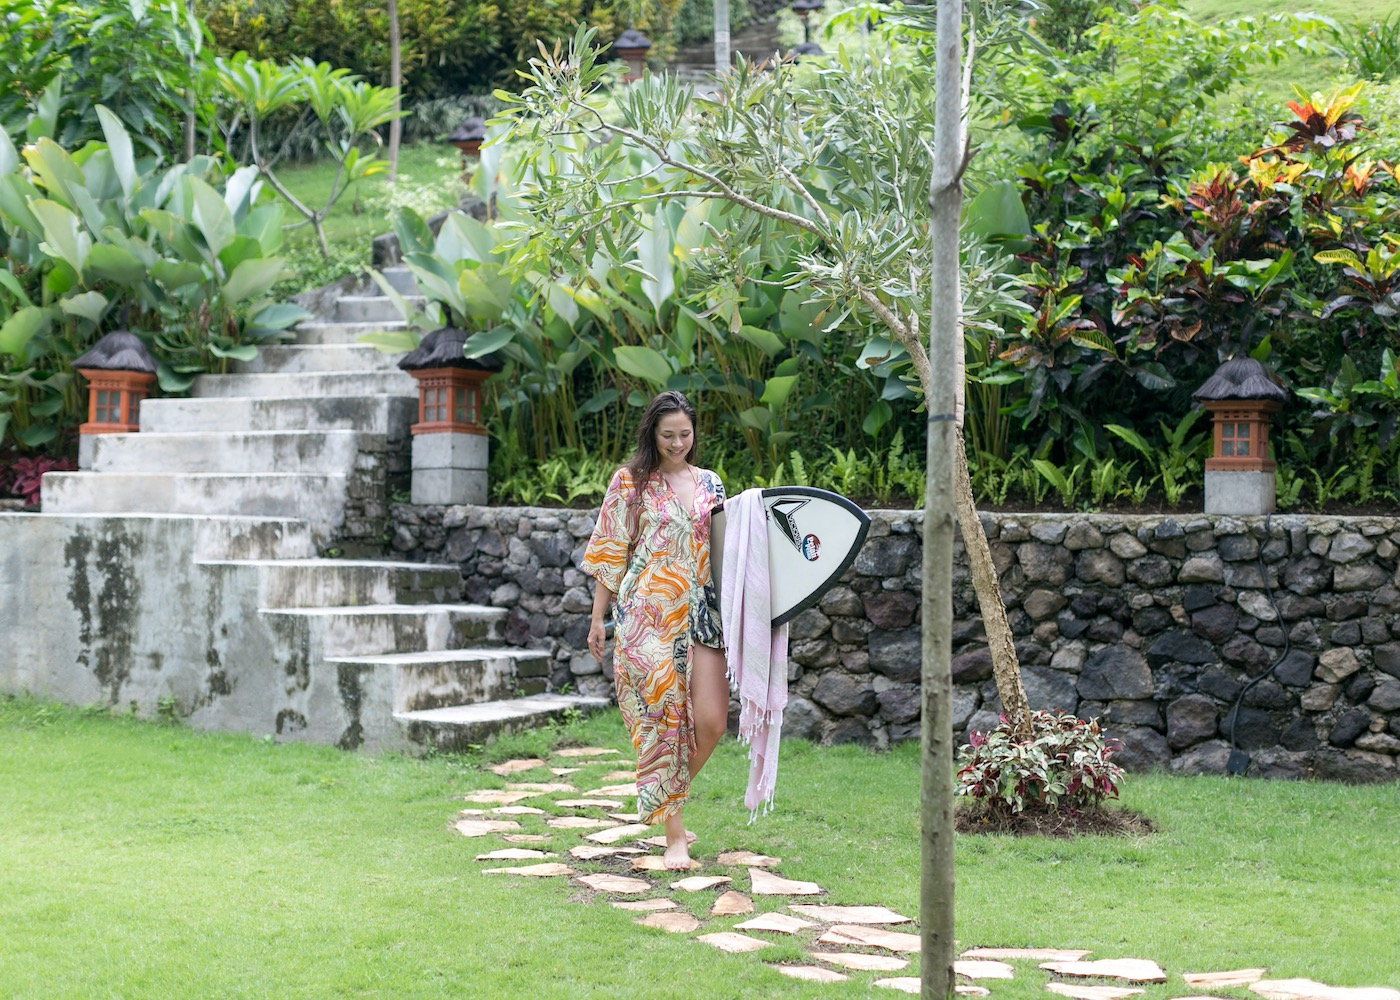 Surf, stretch & chill at Pelan Pelan – a totally flexible, family-run Bali retreat that's taking things back to basics